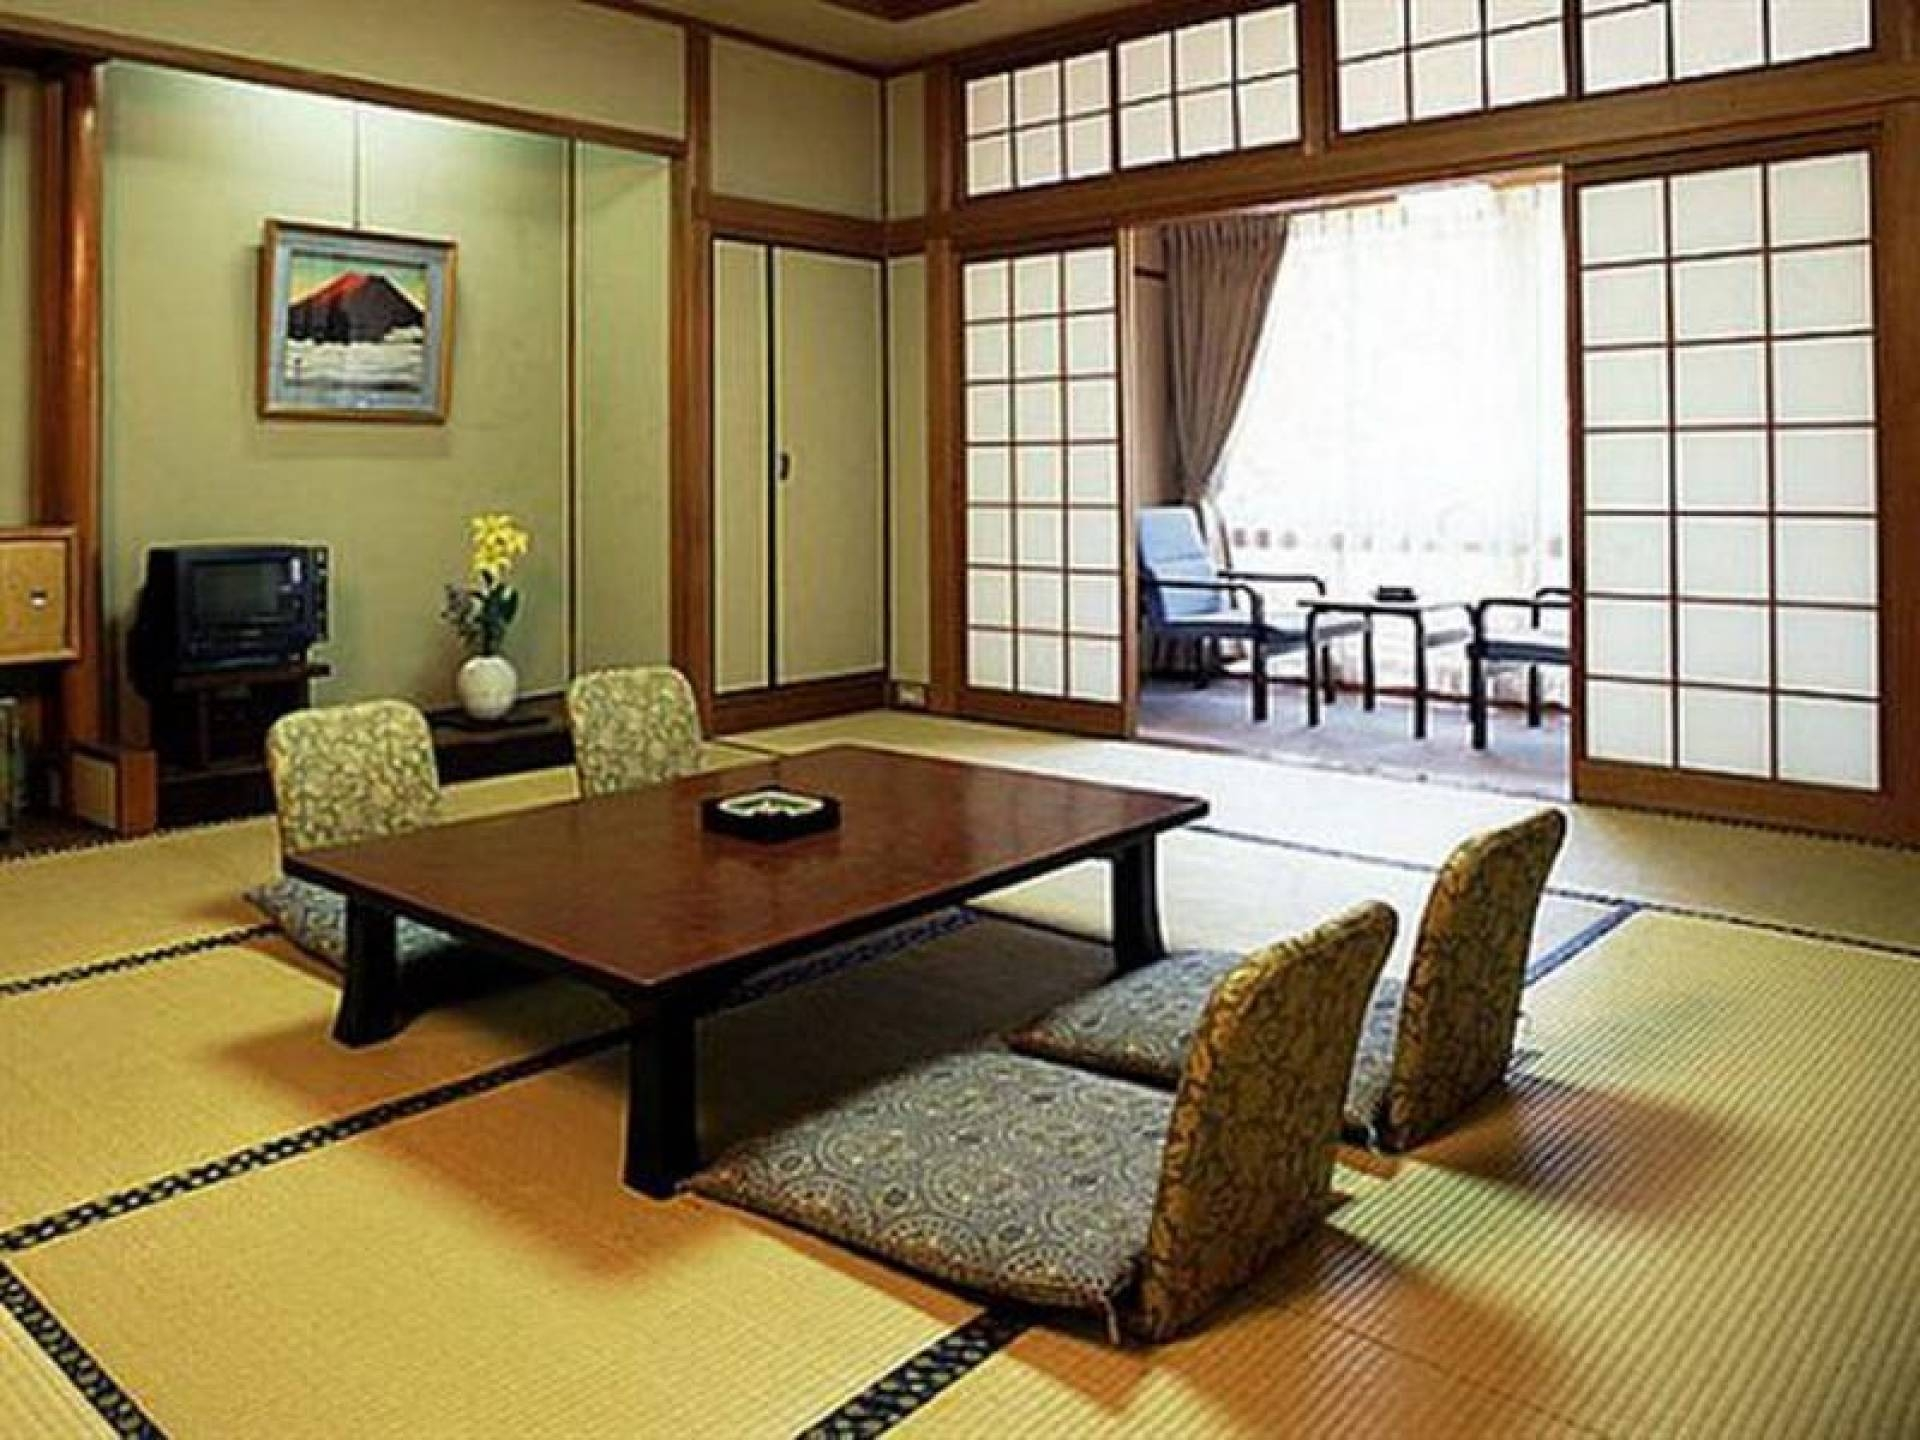 Magnificent Walnut Wooden Long Rectangle Japanese Dining Table Within Low Japanese Style Coffee Tables (View 22 of 30)